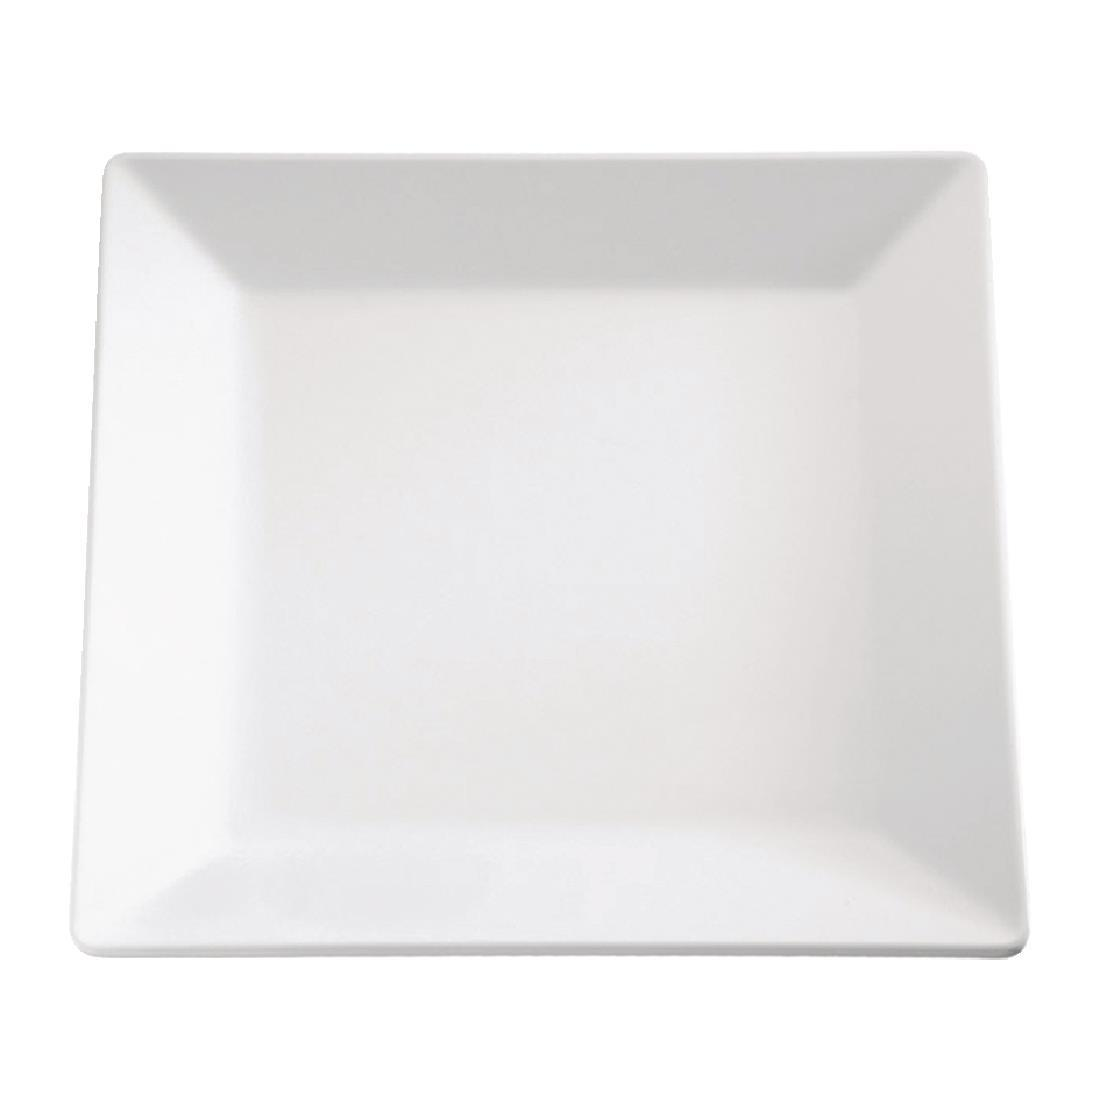 GF170 - APS Pure Melamine Square Tray 7in - Each - GF170